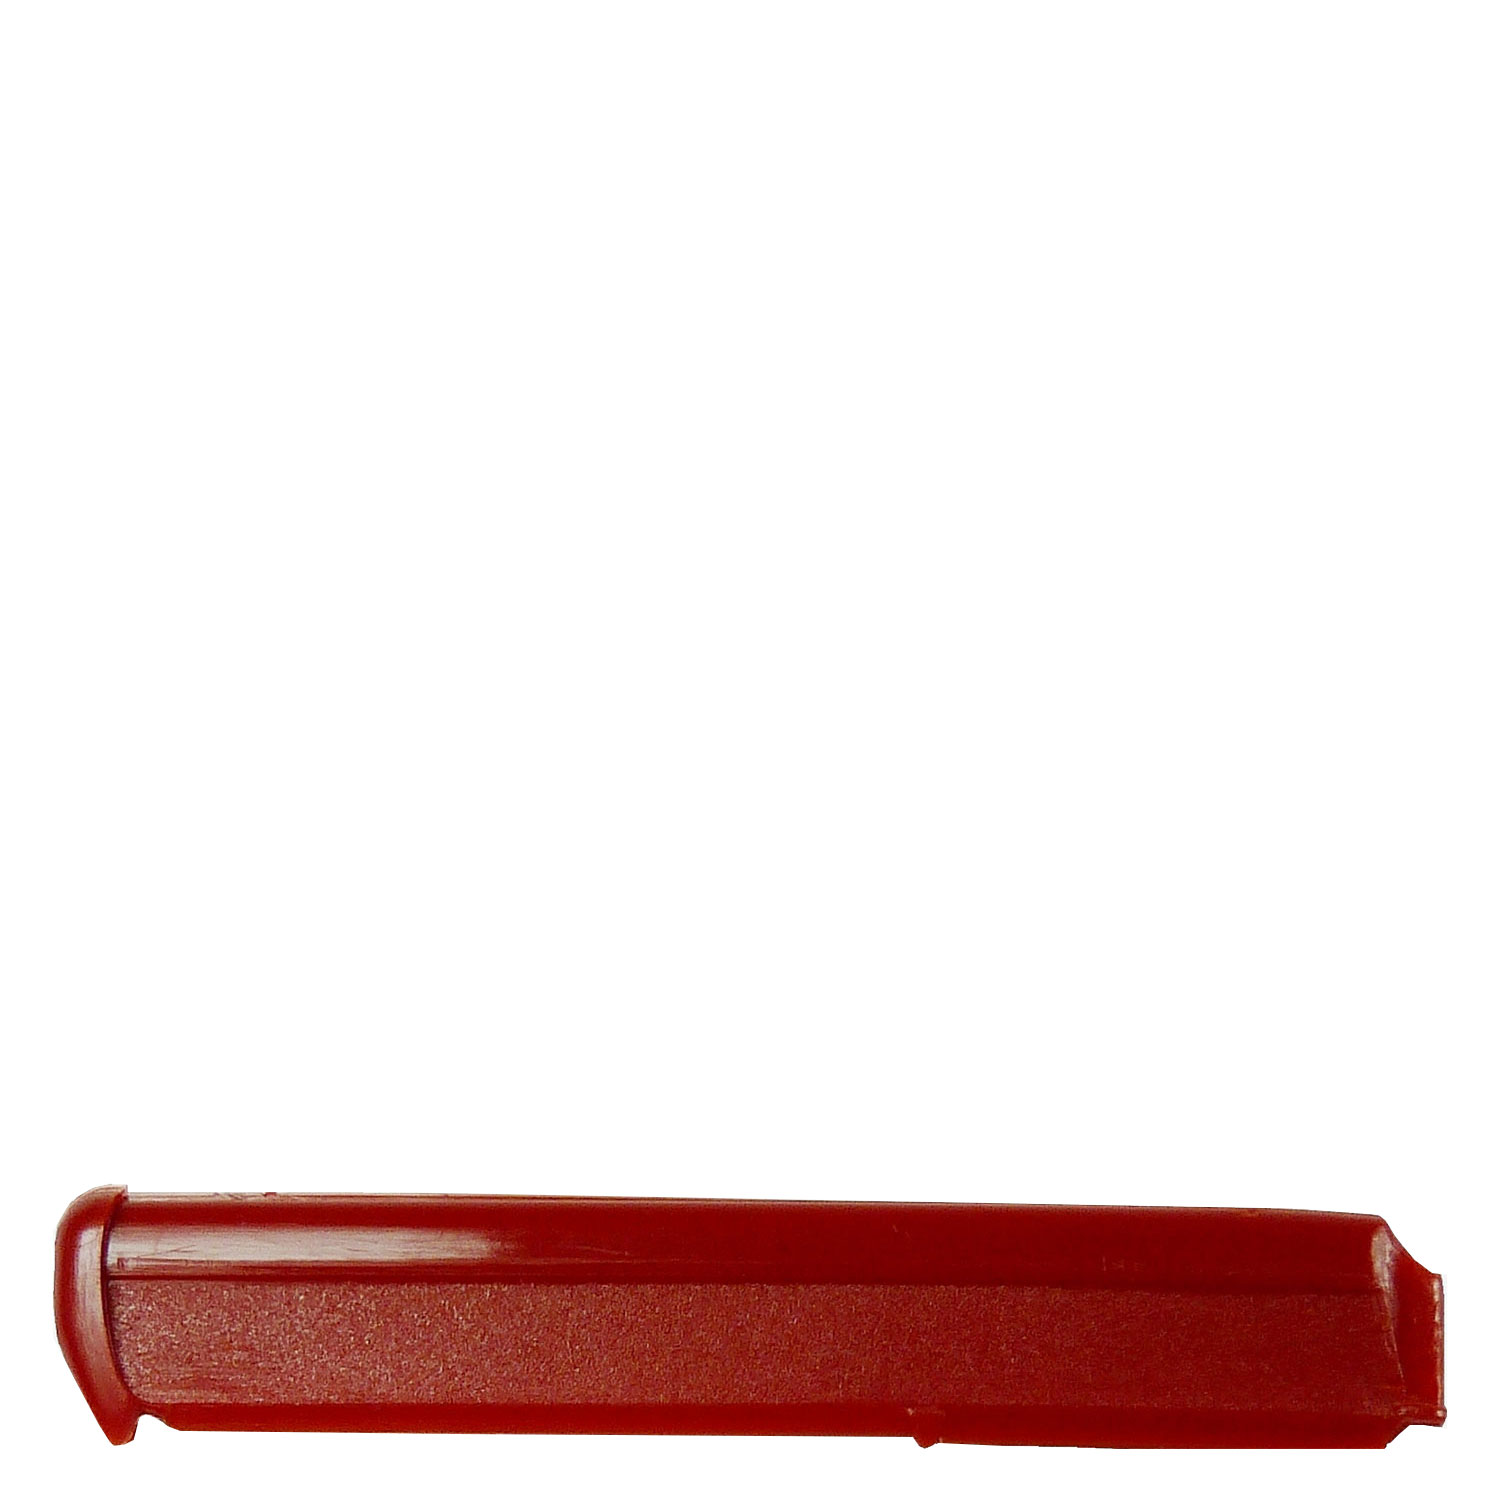 Tondeo Razor - Sifter Protection Red TCR